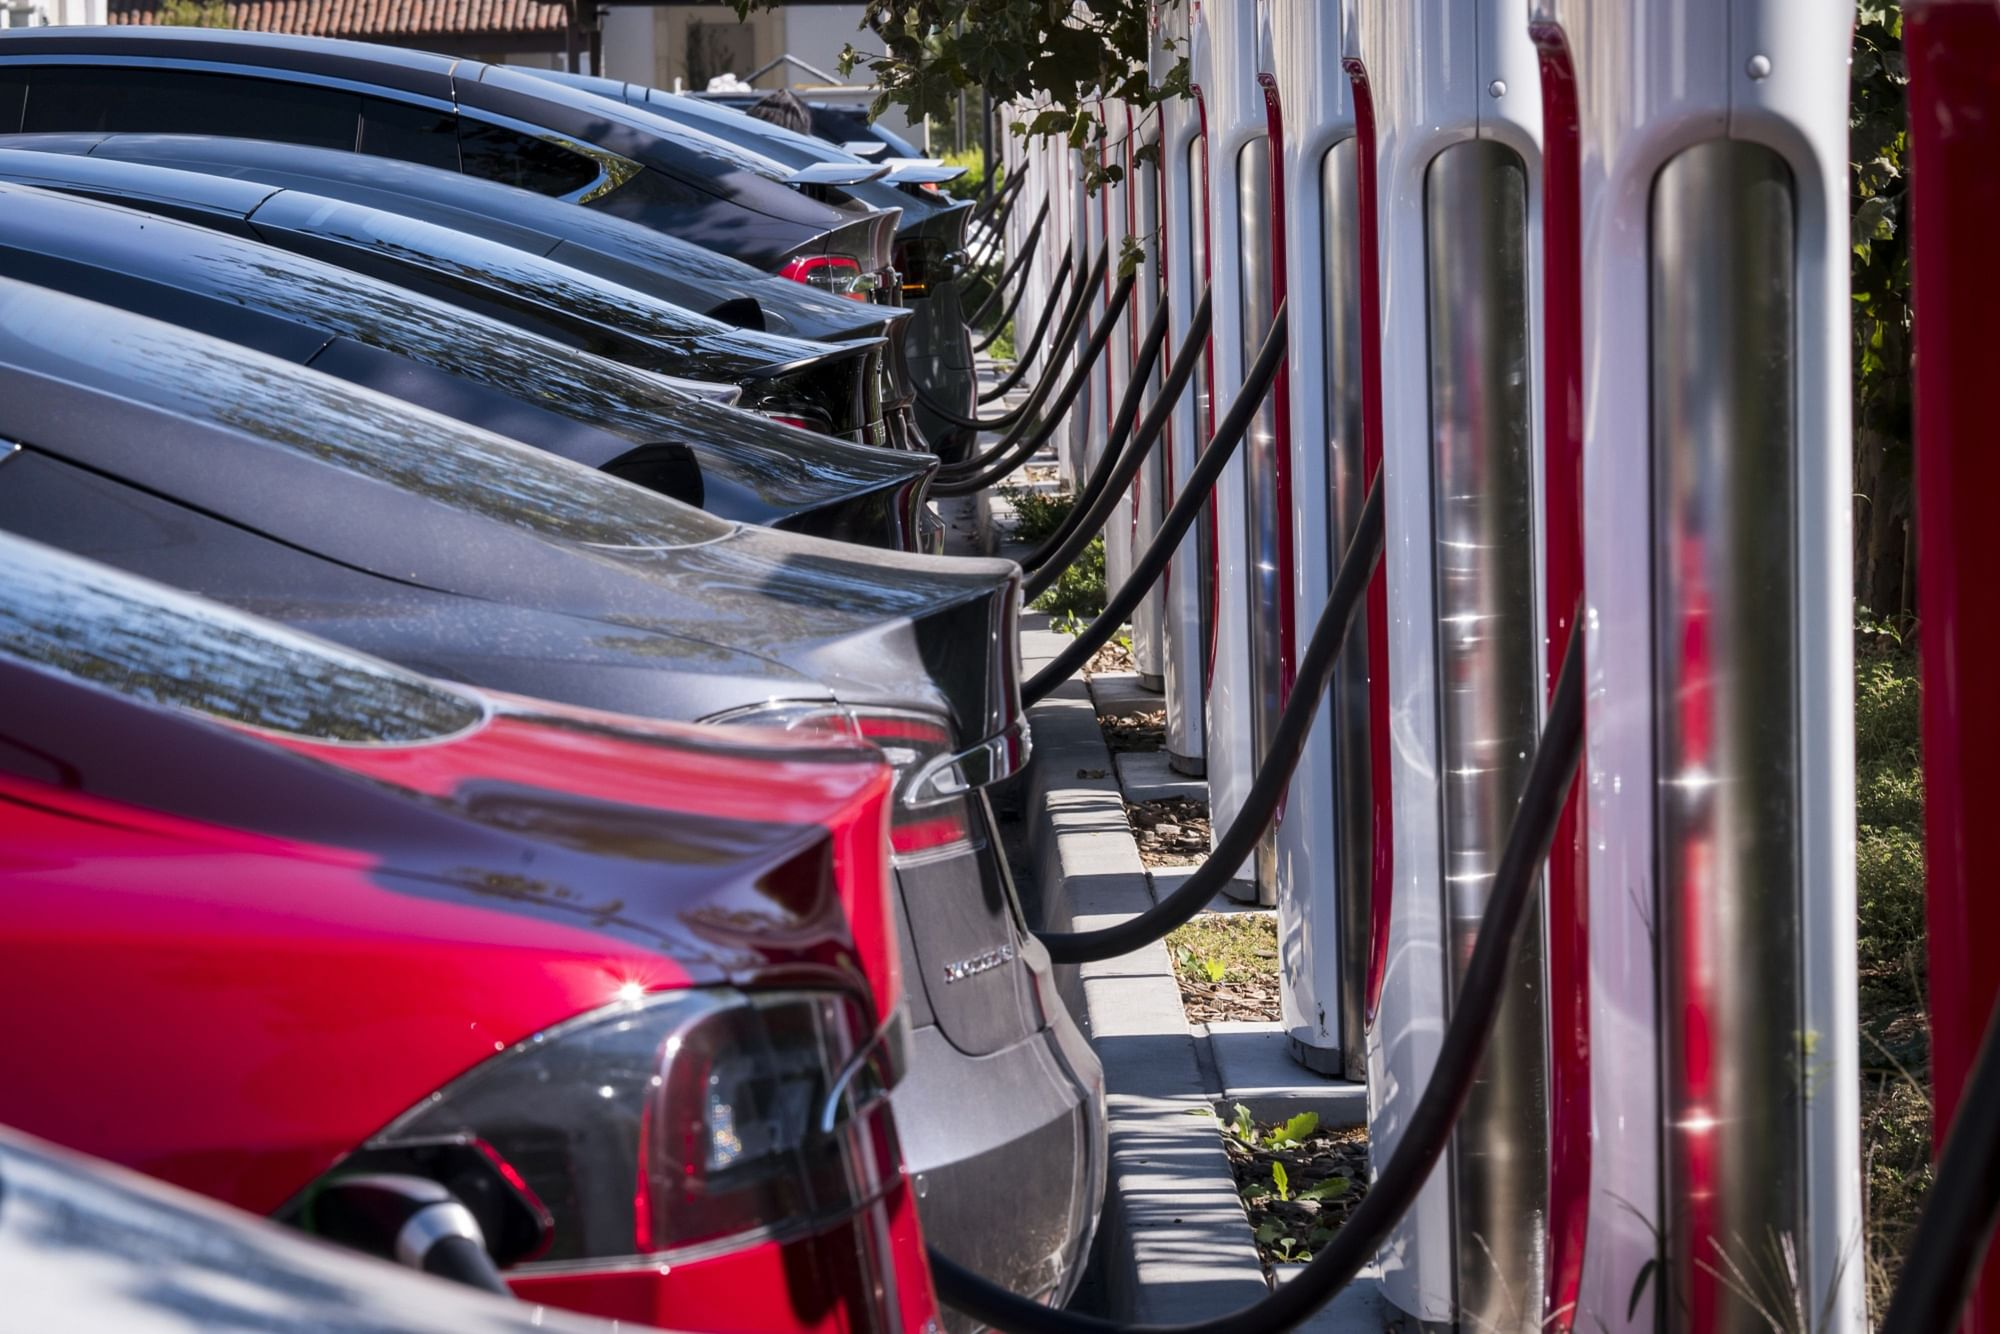 Tesla Inc. vehicles stand at a Tesla Supercharger station in Concord, California. (Photographer: David Paul Morris/Bloomberg)